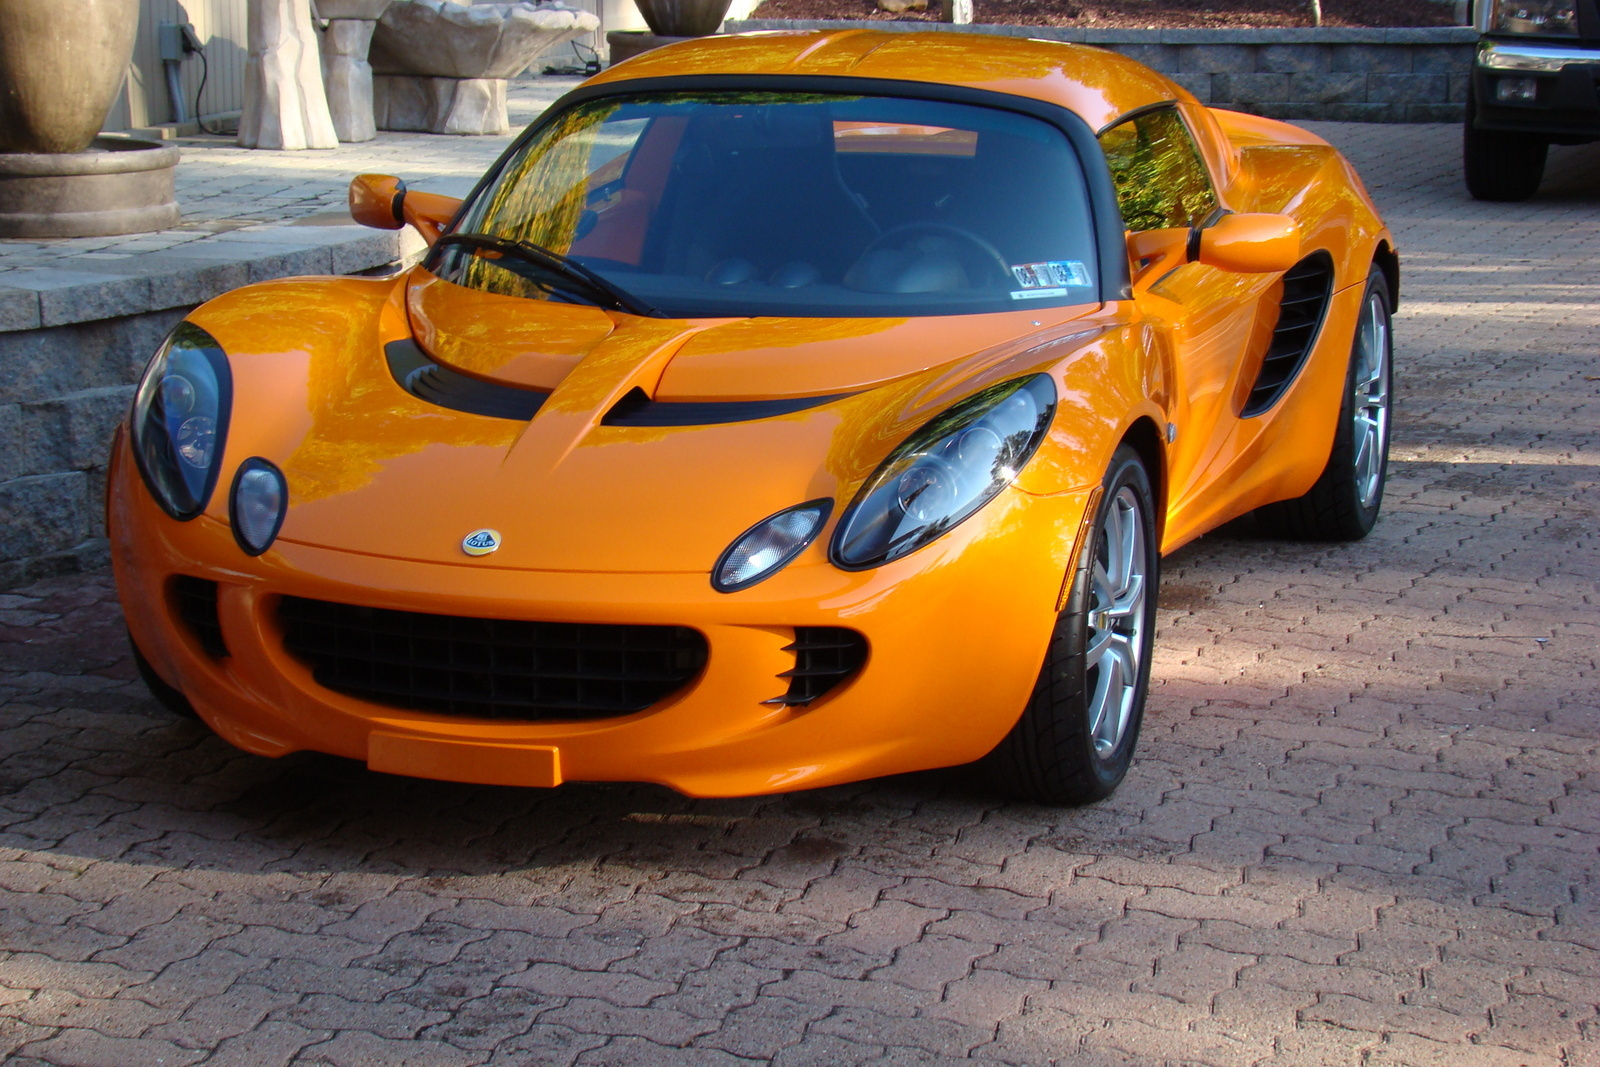 2007 Lotus Elise - Overview - CarGurus